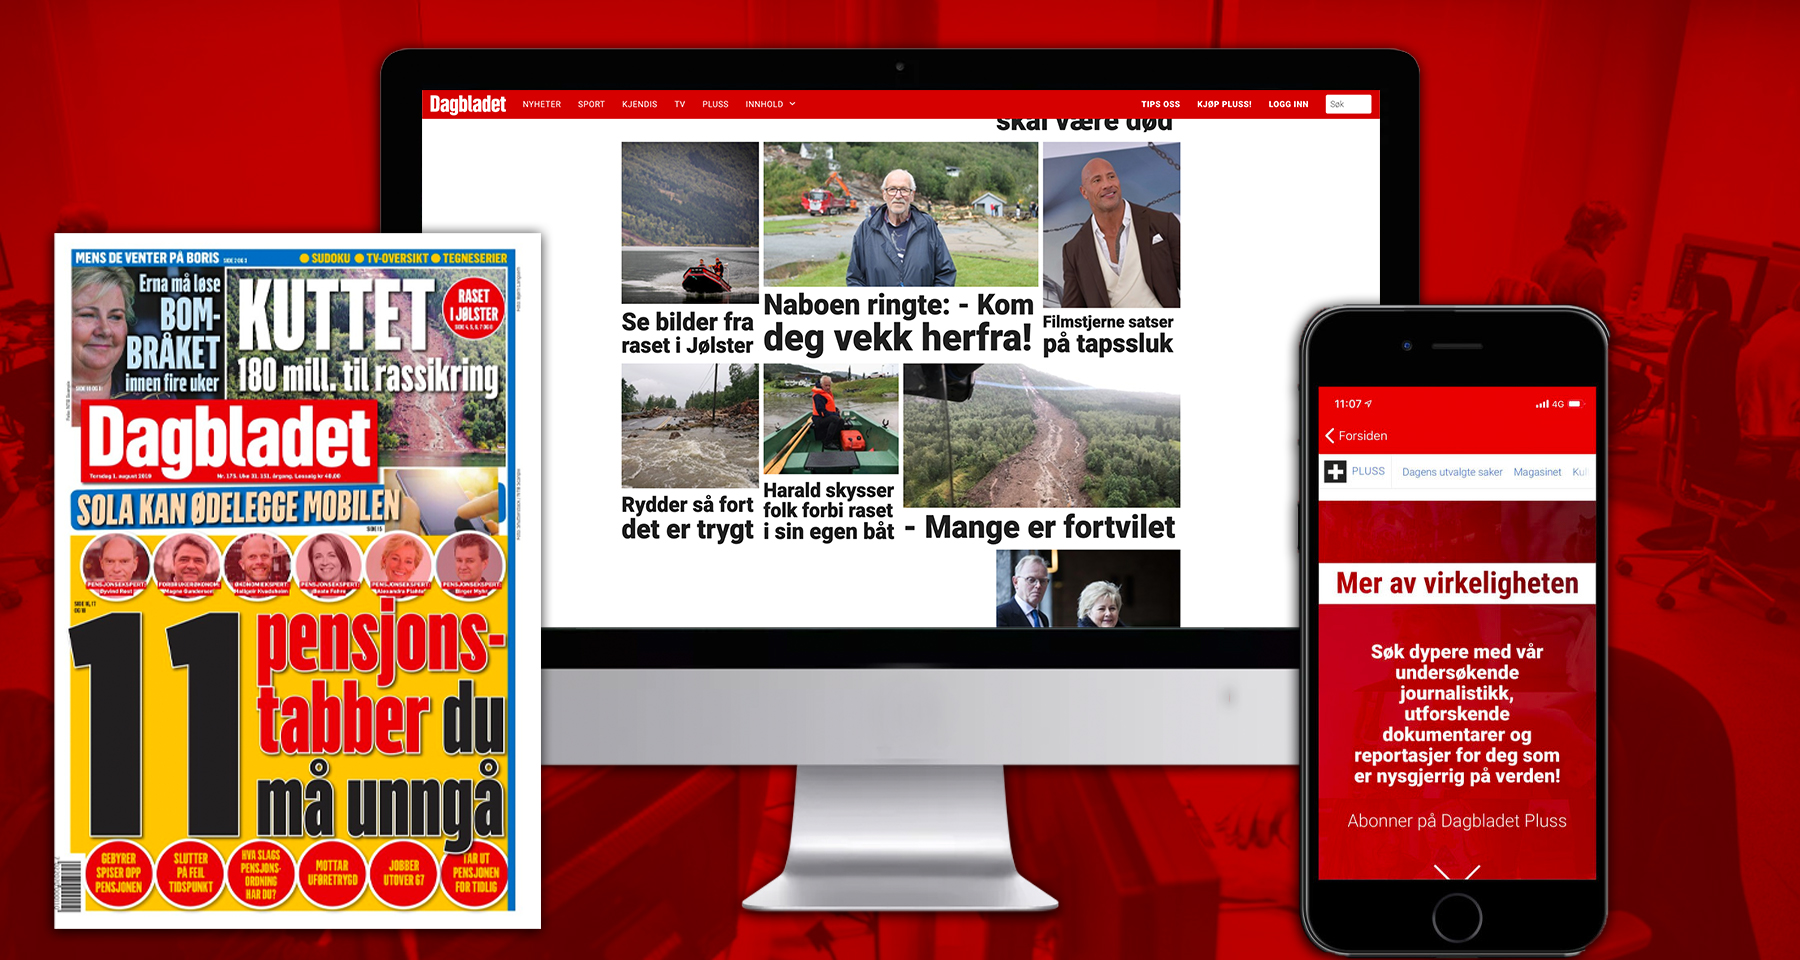 Dagbladet sees WebTV as a lucrative audience engagement platform